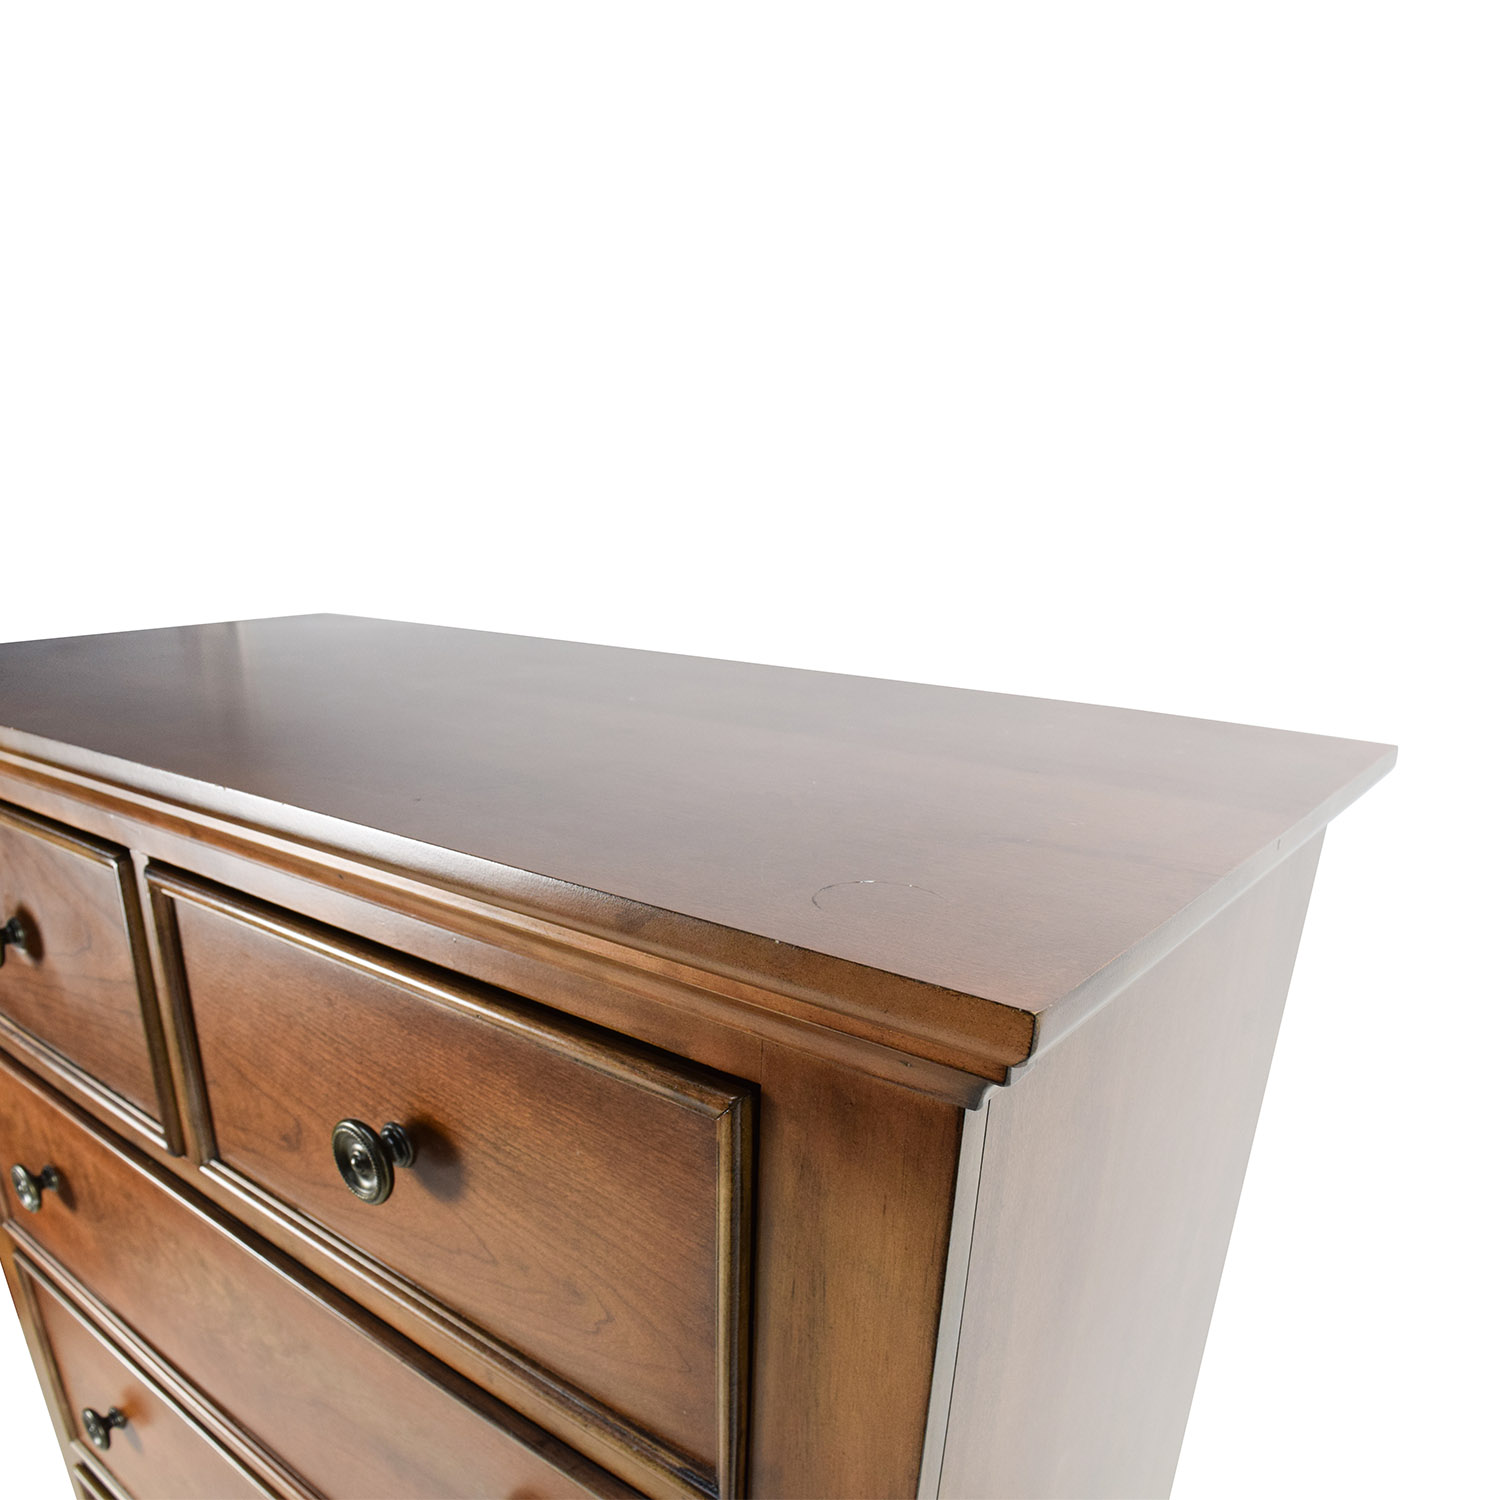 56% OFF - Raymour and Flanigan Raymour & Flanigan Tall Rustic Wood Chest of Drawers / Storage